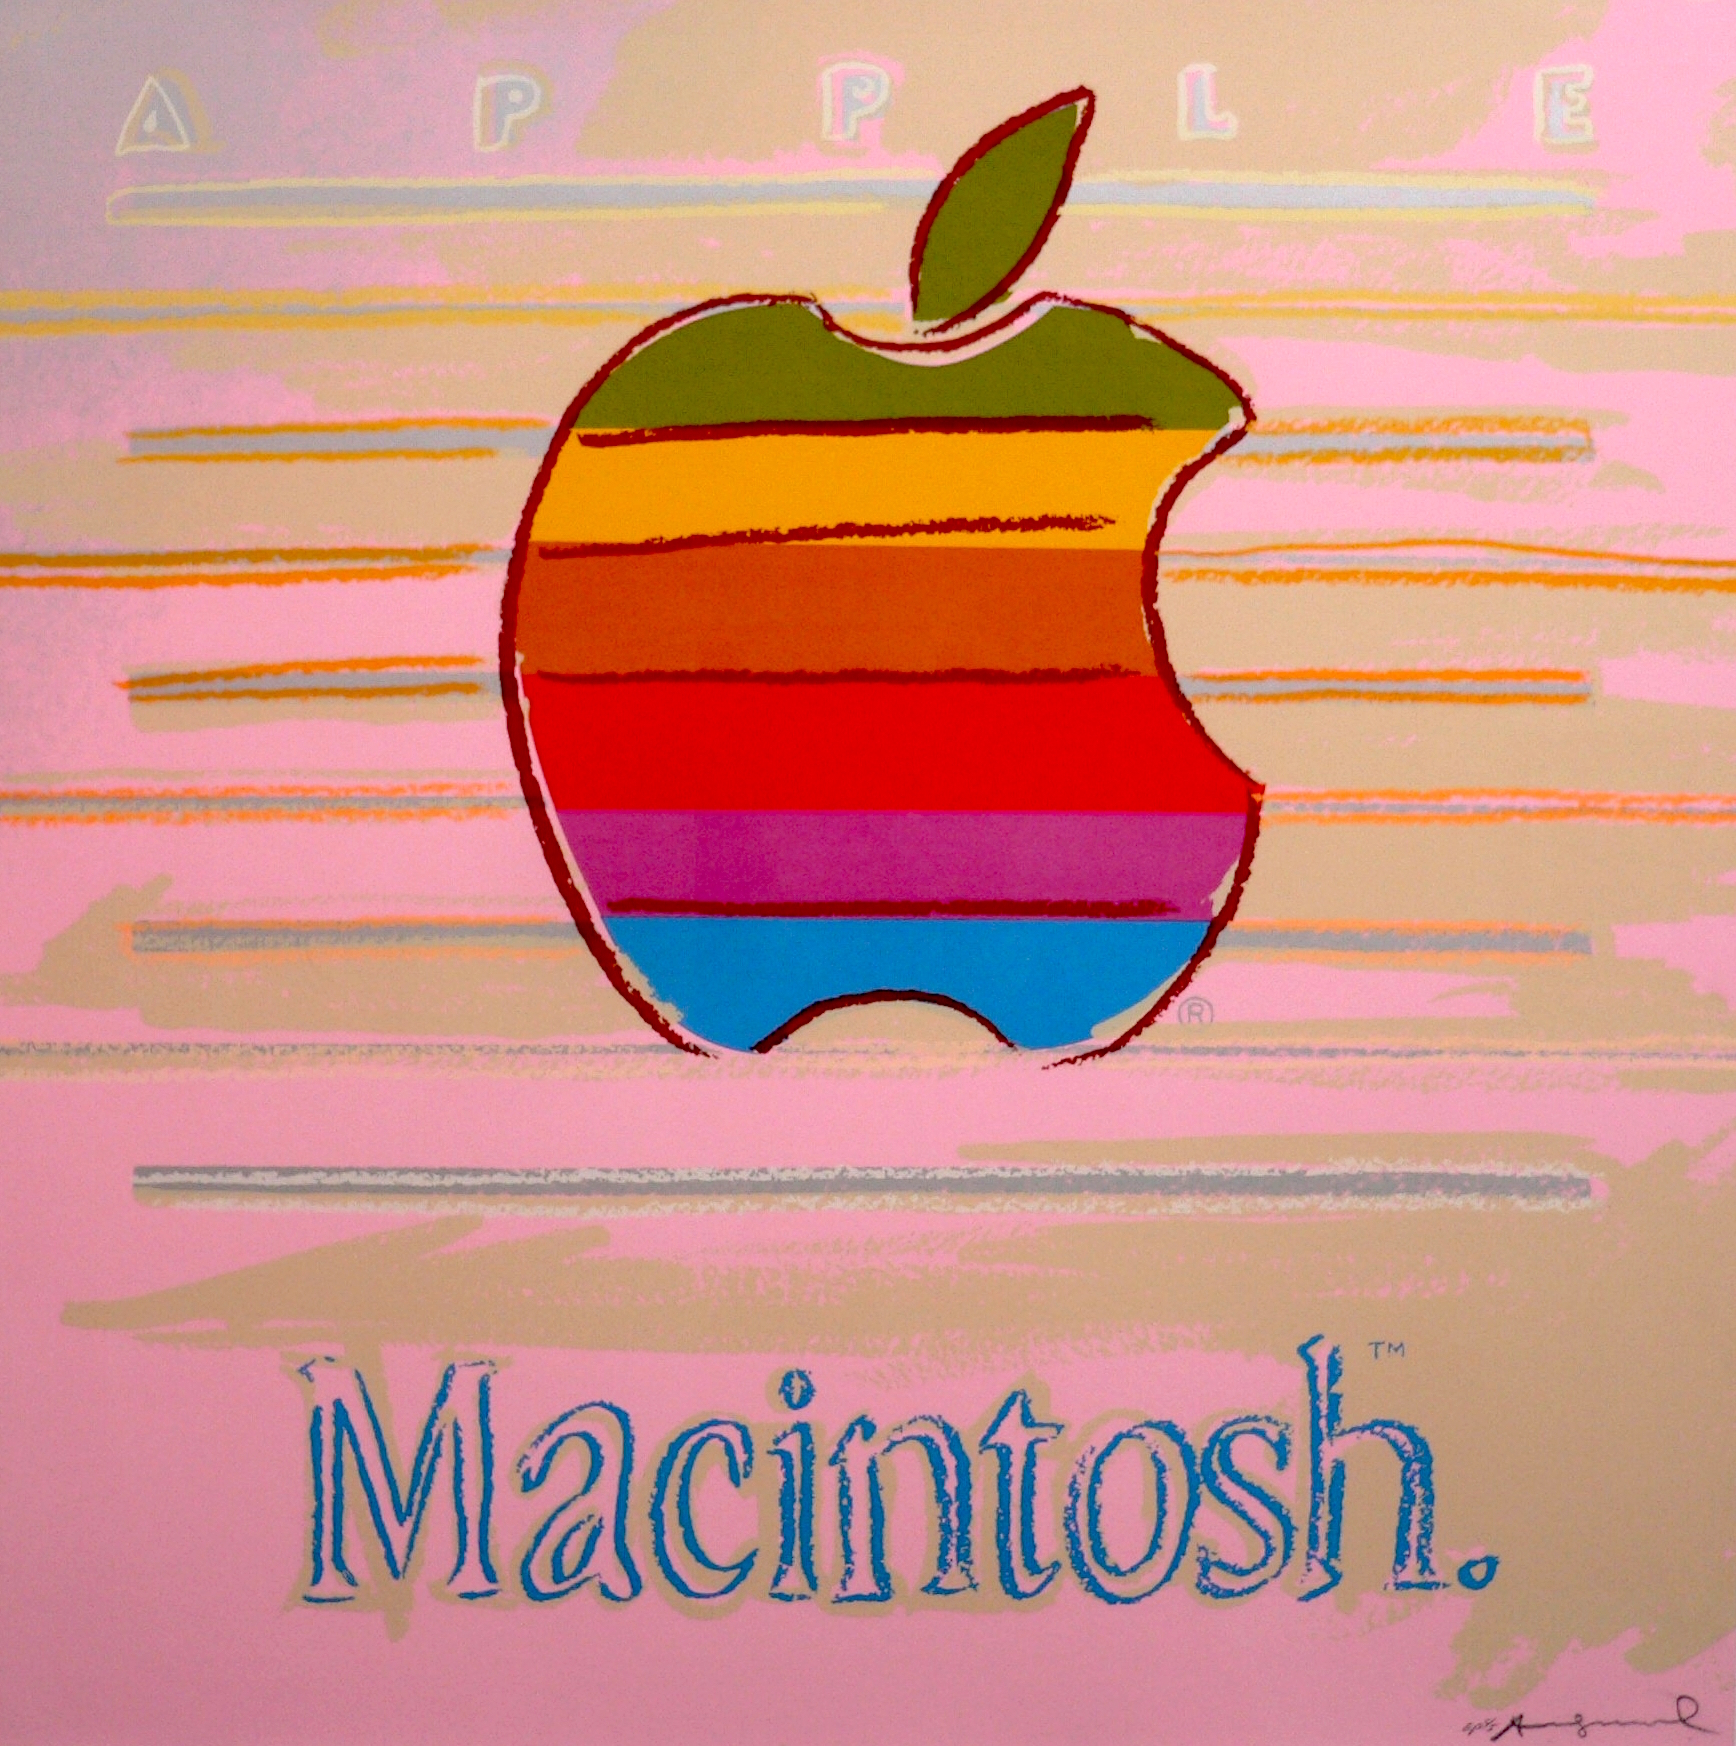 Apple (Macintosh) Ad by Andy Warhol